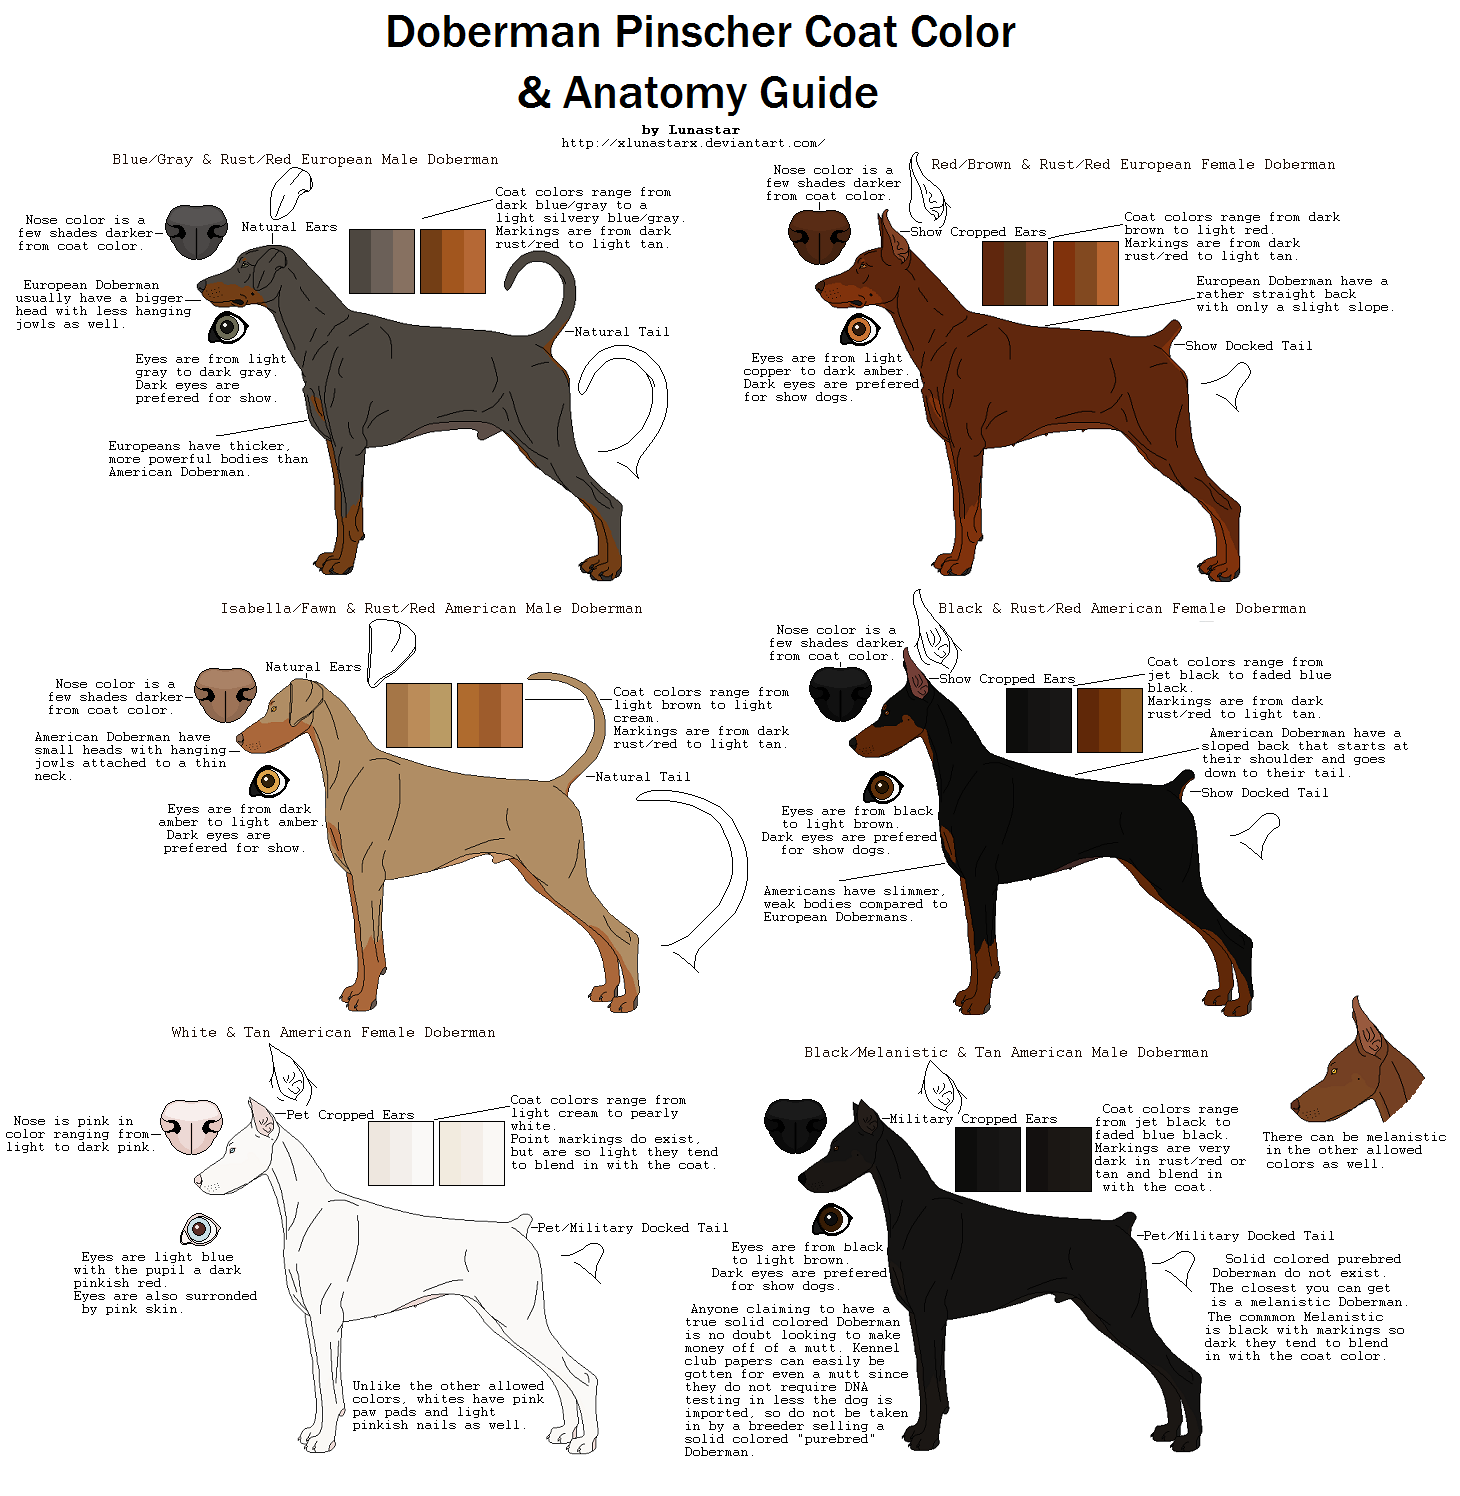 Doberman Pinscher Coat Color And Anatomy Guide By Xlunastarx